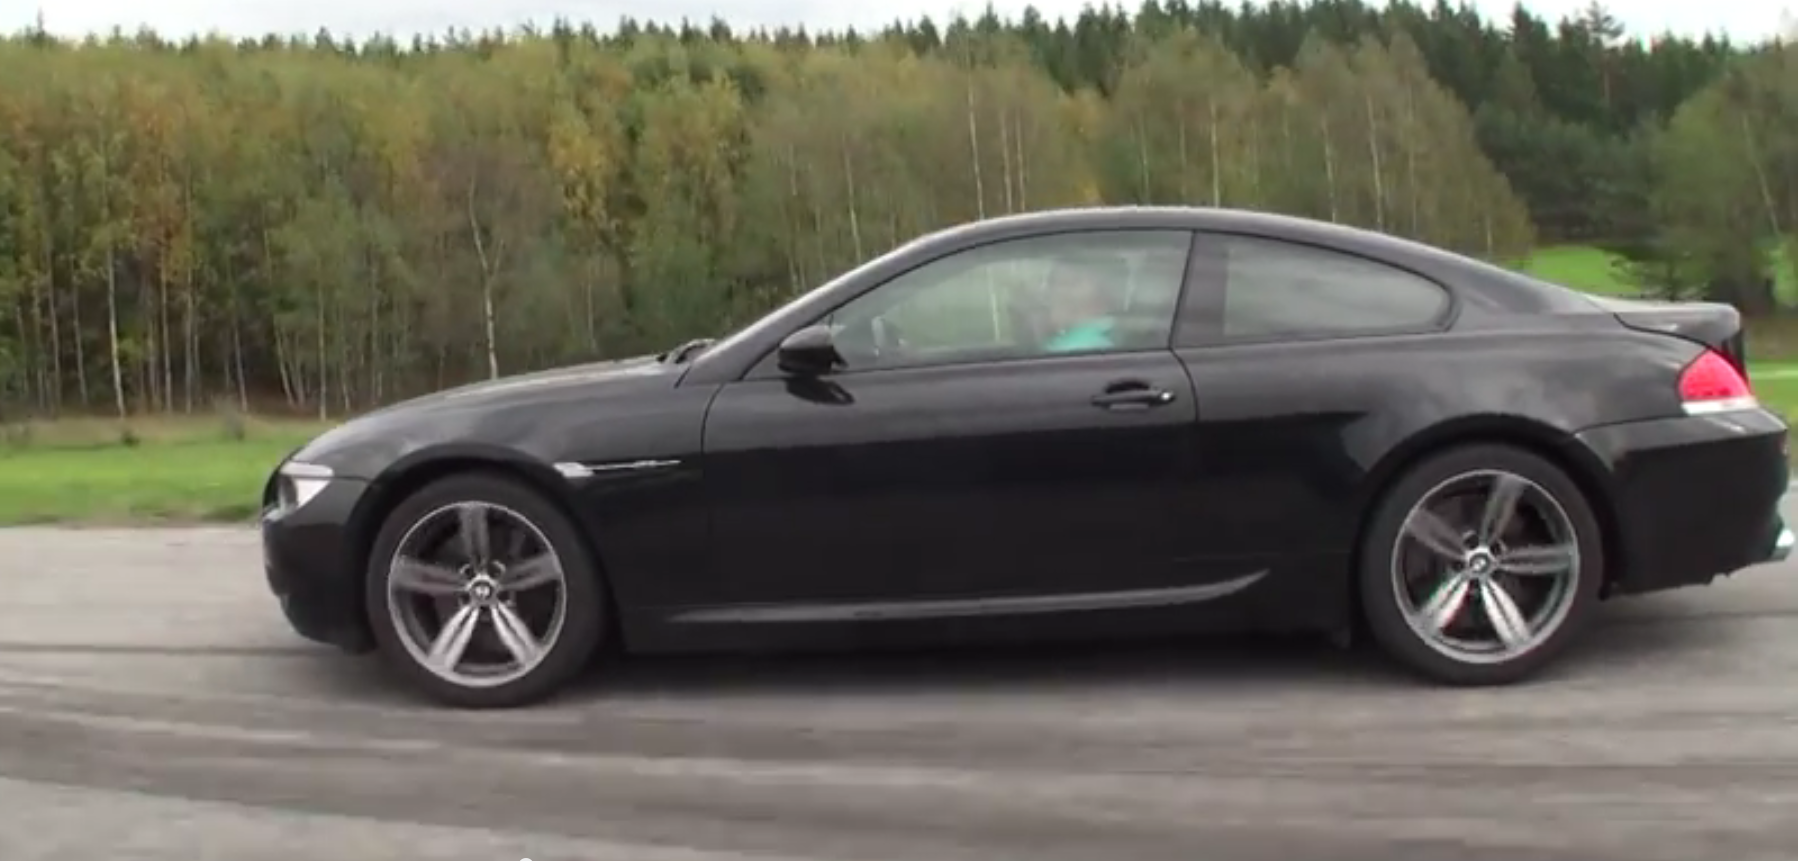 Stock Nissan Gt R Versus Tuned Bmw E63 M6 On The Drag